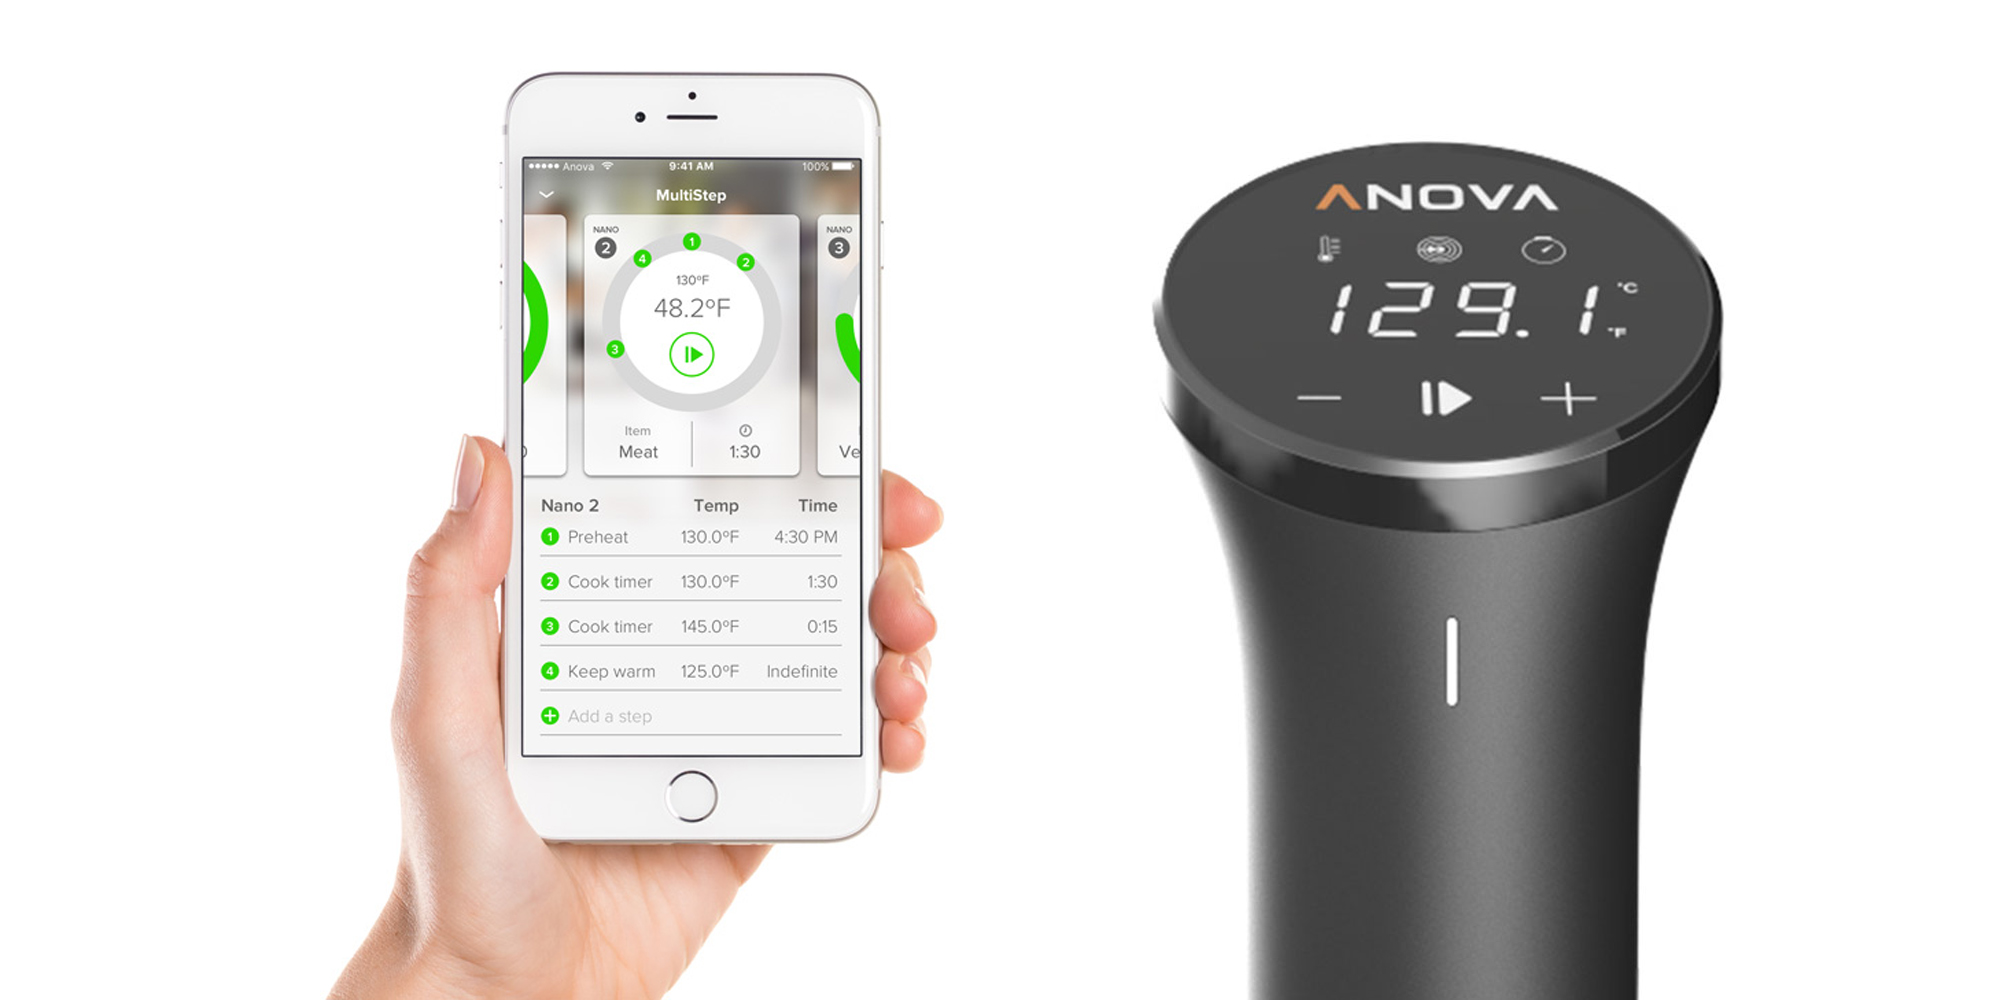 Anova Sous Vide Precision Nano Cooker now below Black Friday pricing at $61 (Reg. $100)